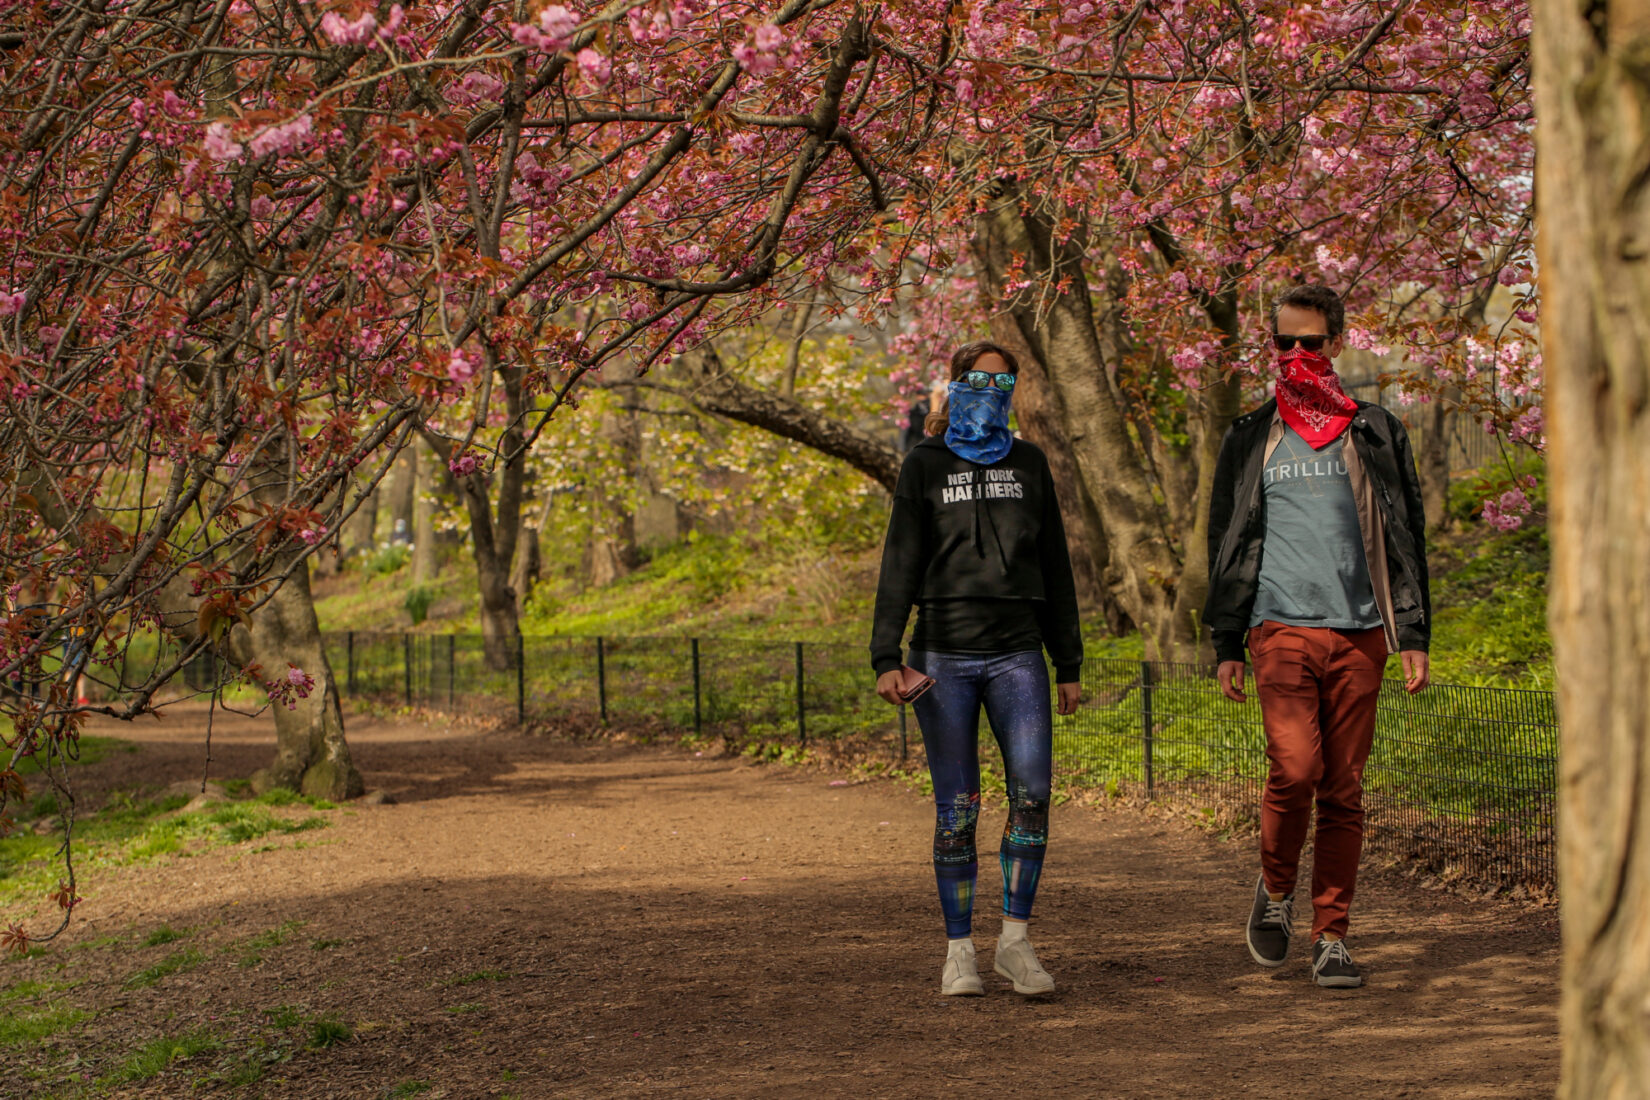 Park-goers, masked, alone on a stroll